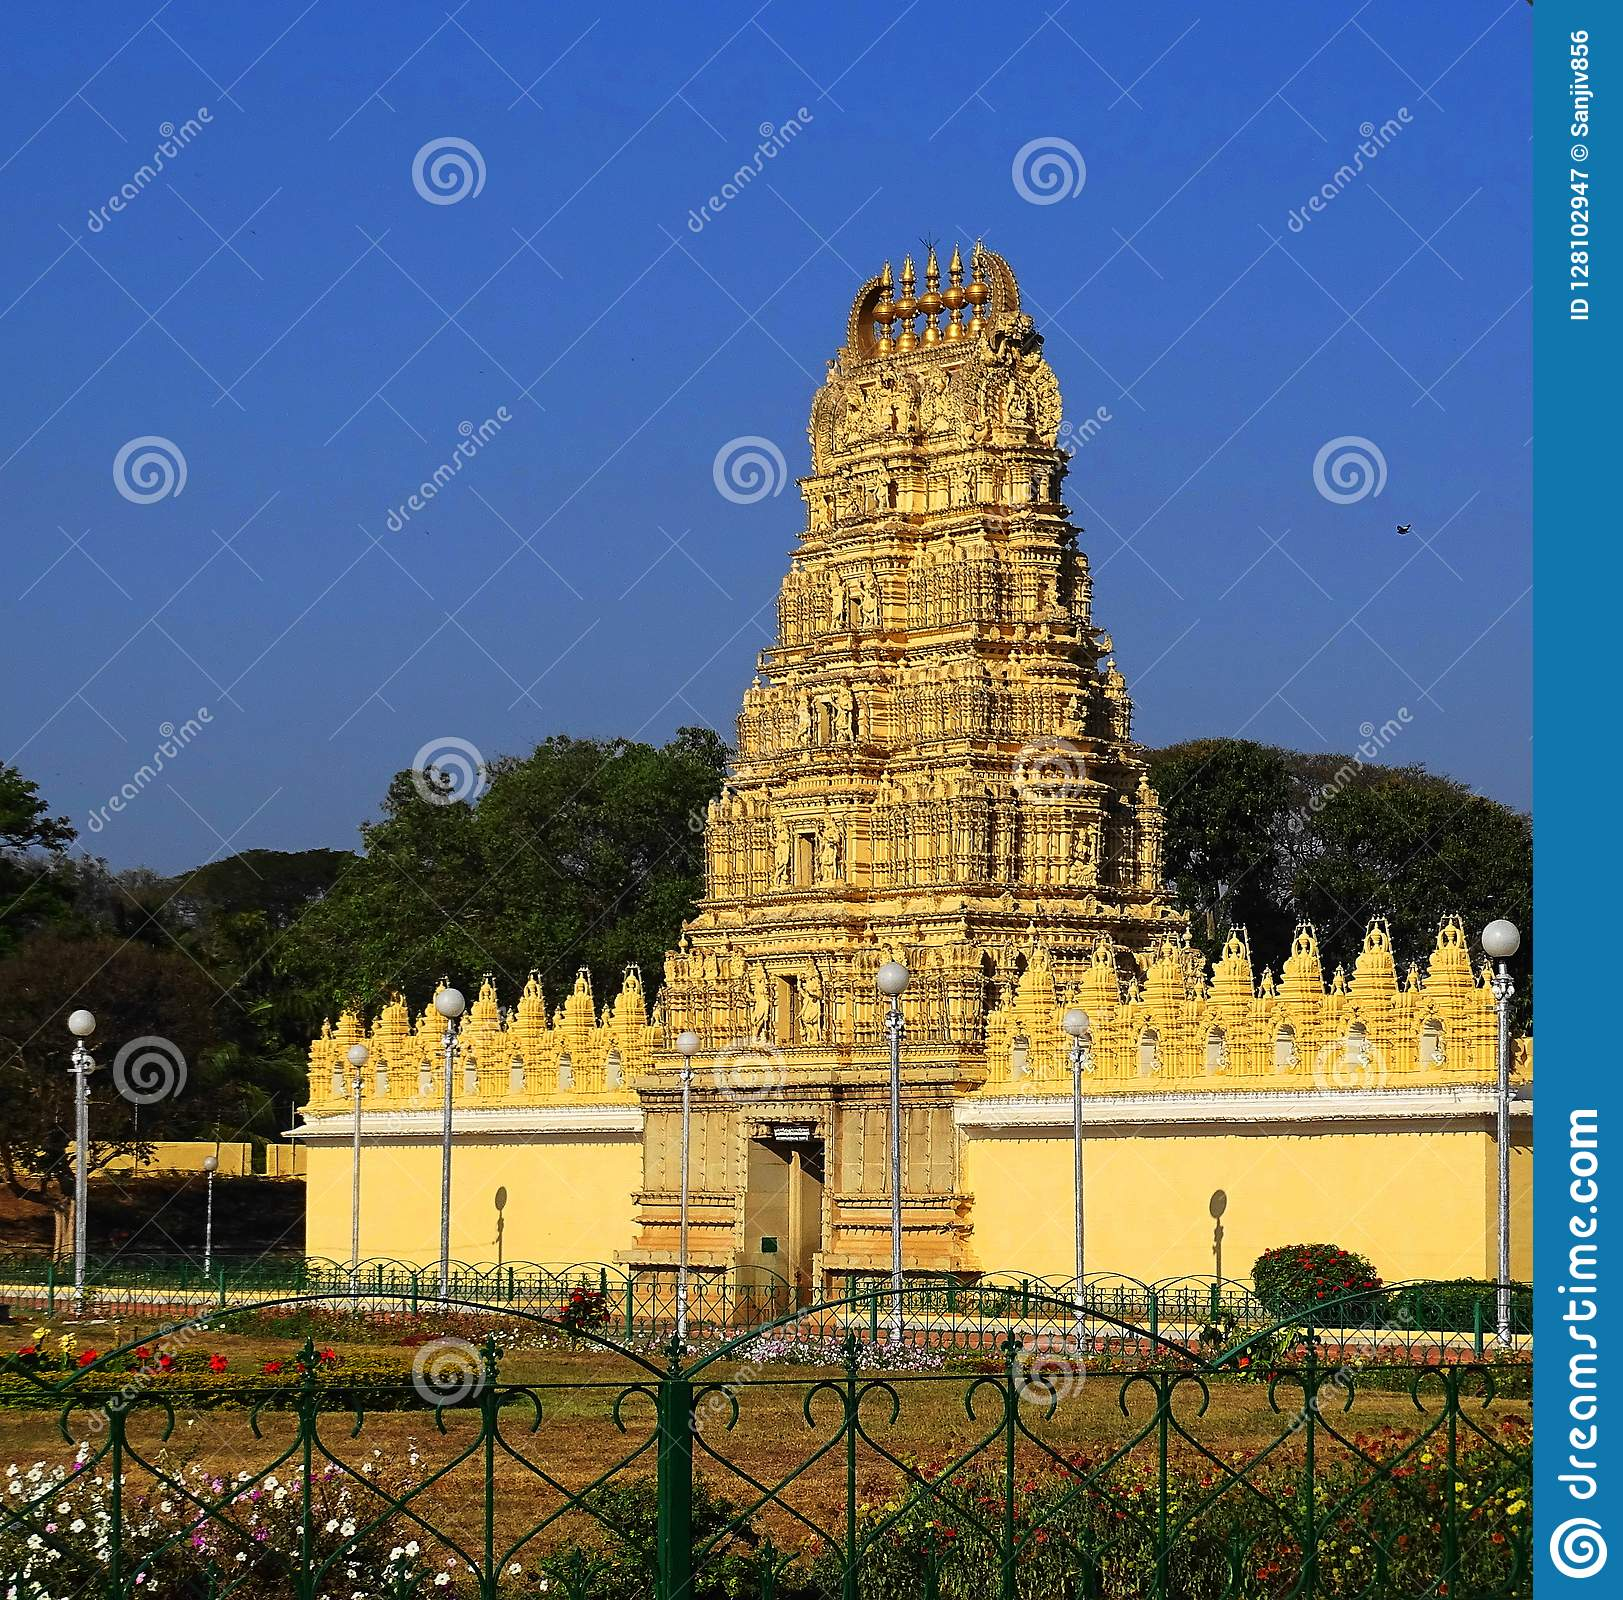 Temple With South Indian Architect Stock Image - Image of